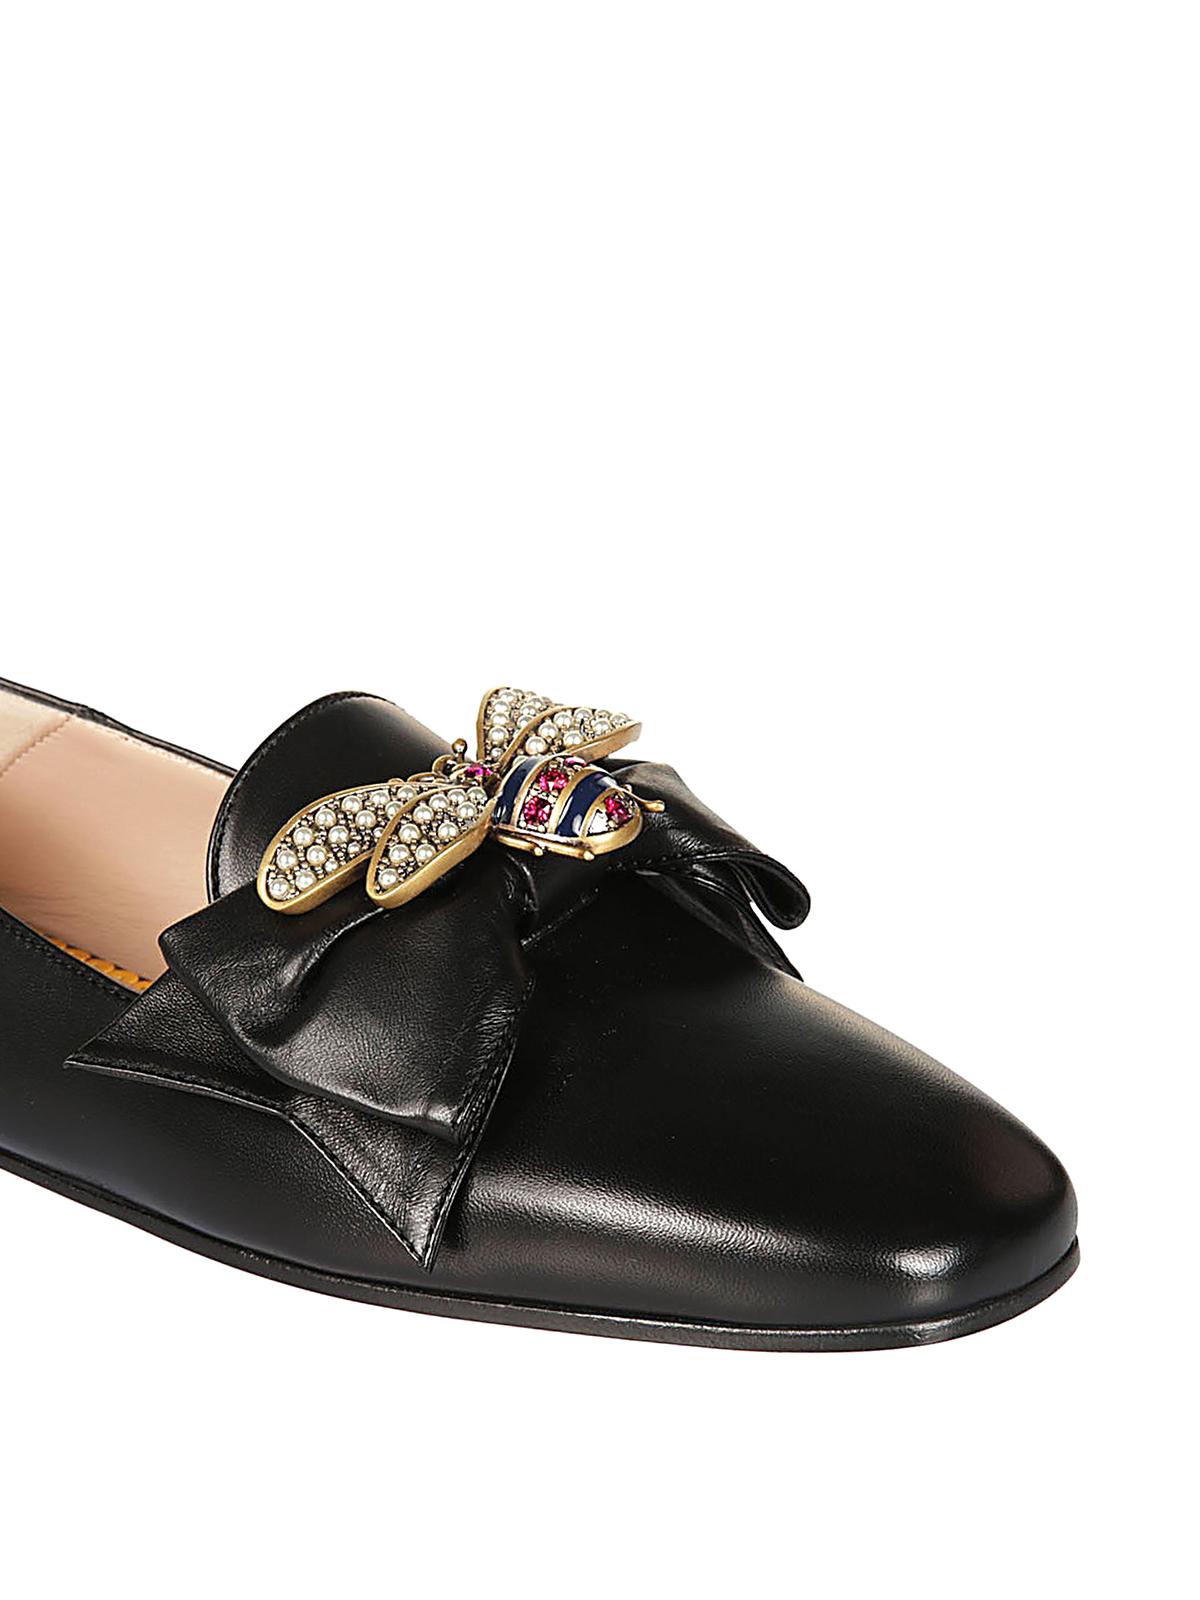 63cd83c94d3 Gucci - Bow and bee leather ballerinas - flat shoes - 505291BKO001000